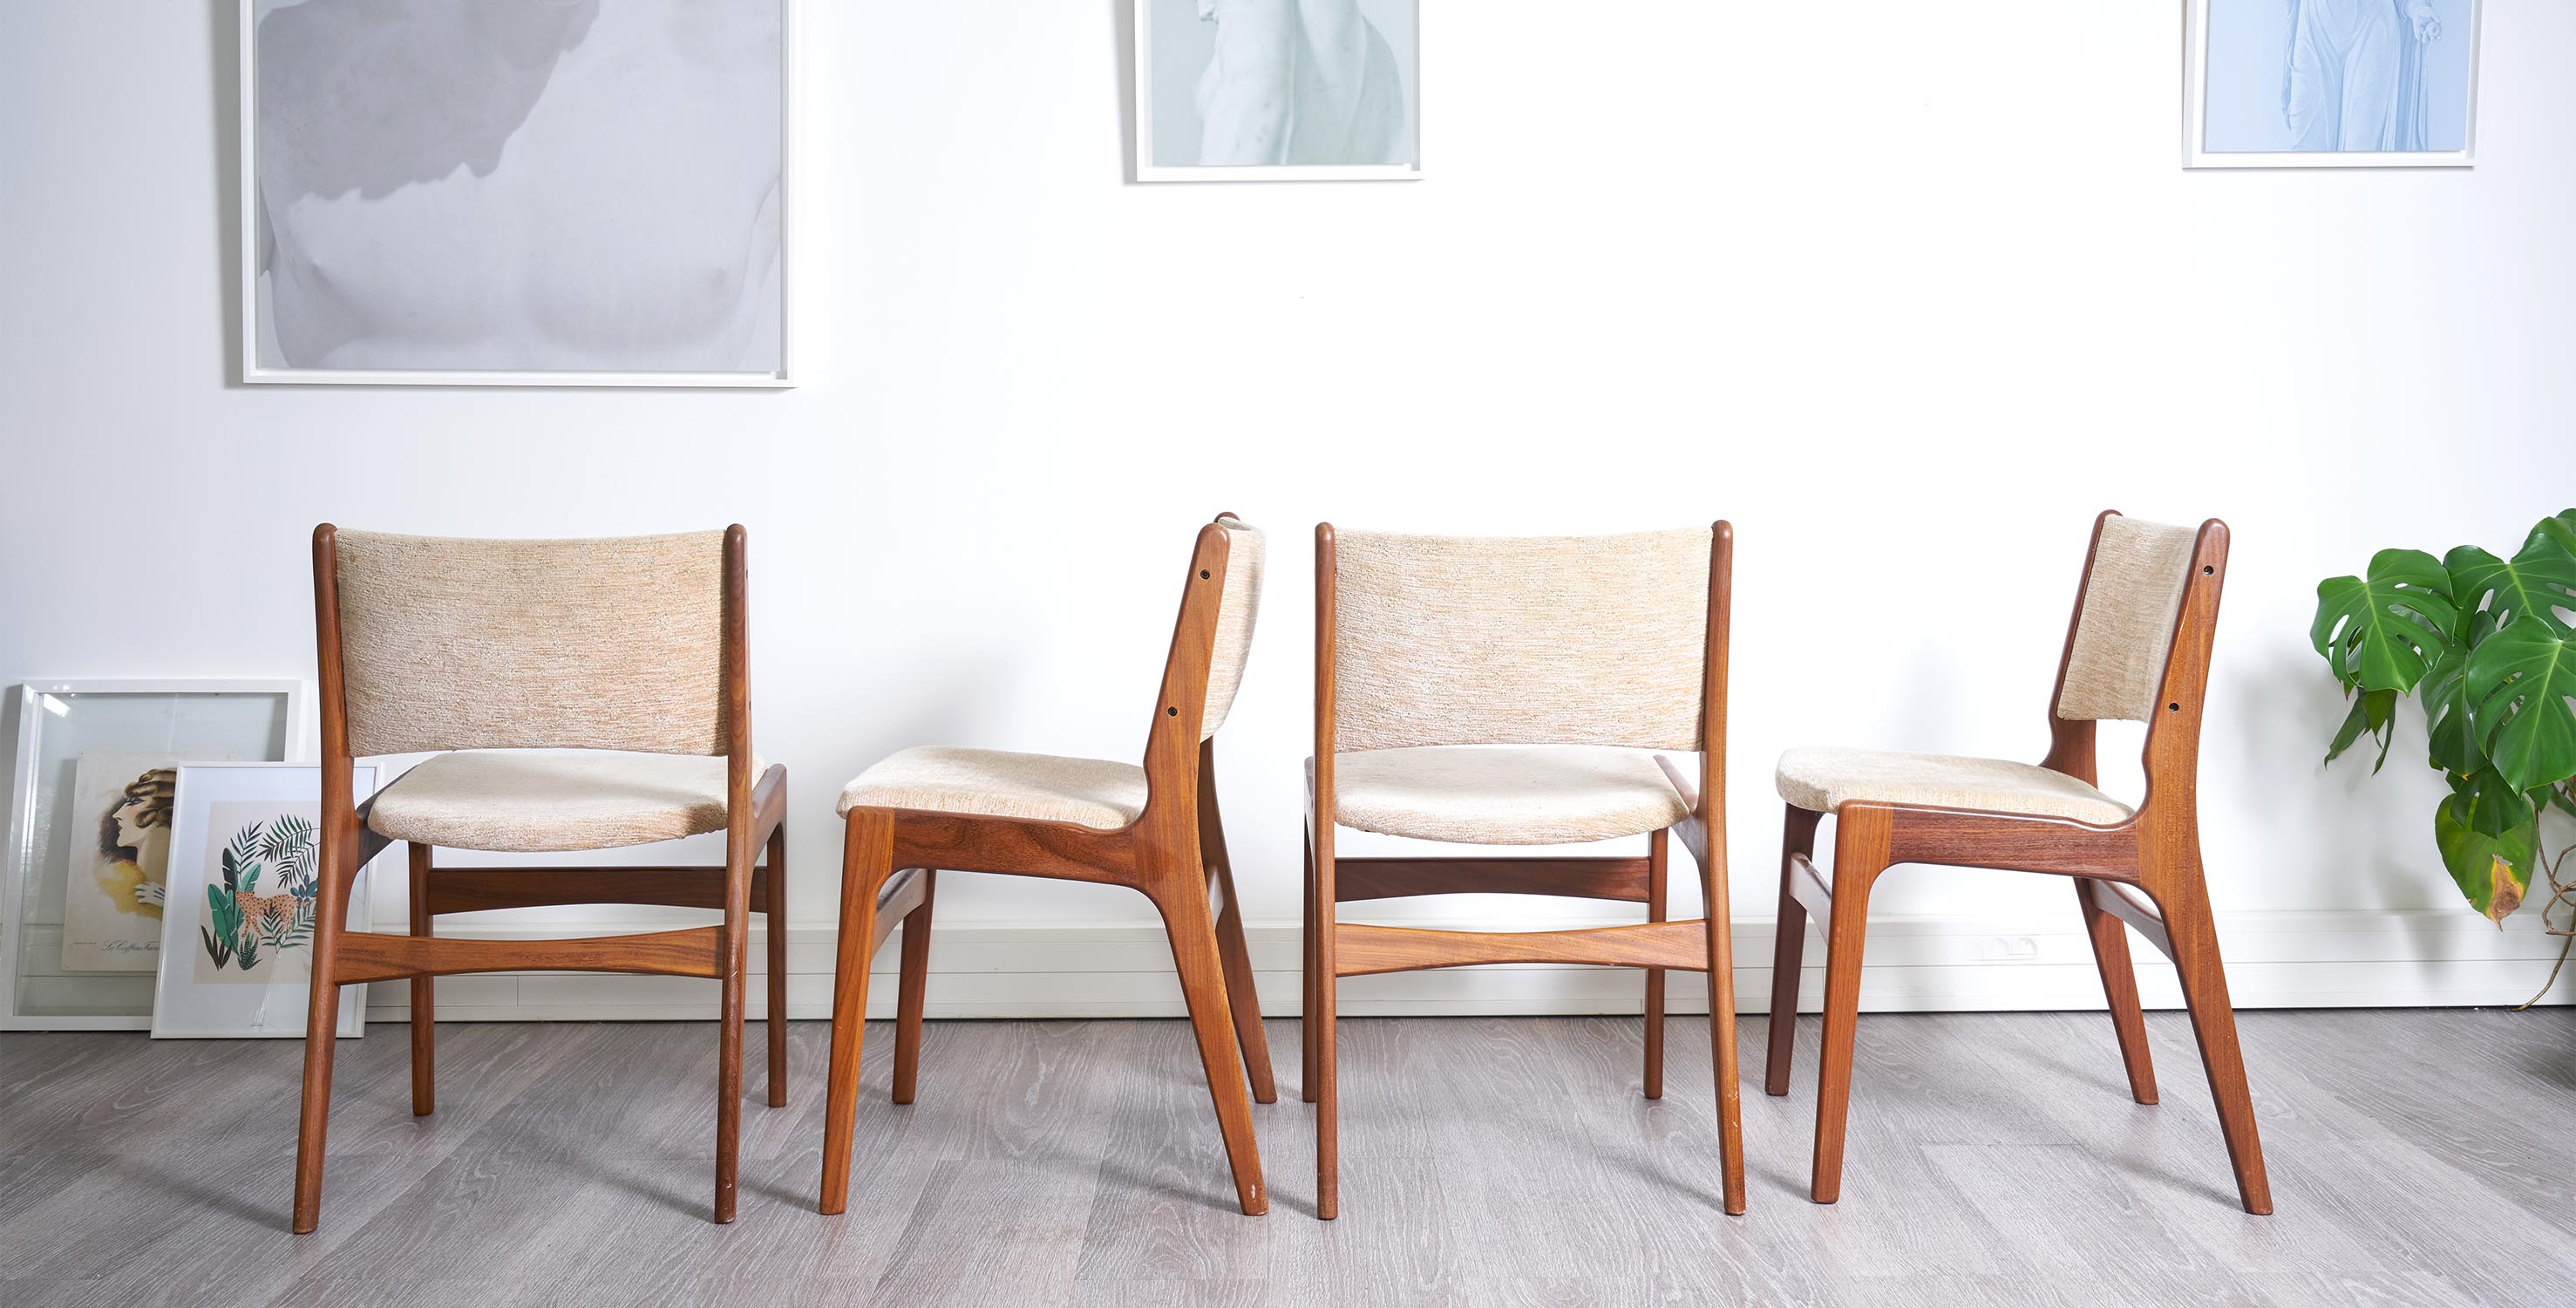 4 chaises scandinave. chaises vintage, chaise teck vintage, chaises scandinaves vintage, chaises en teck vintage, 4 chaises vintage, eames, mobilier paris, eames